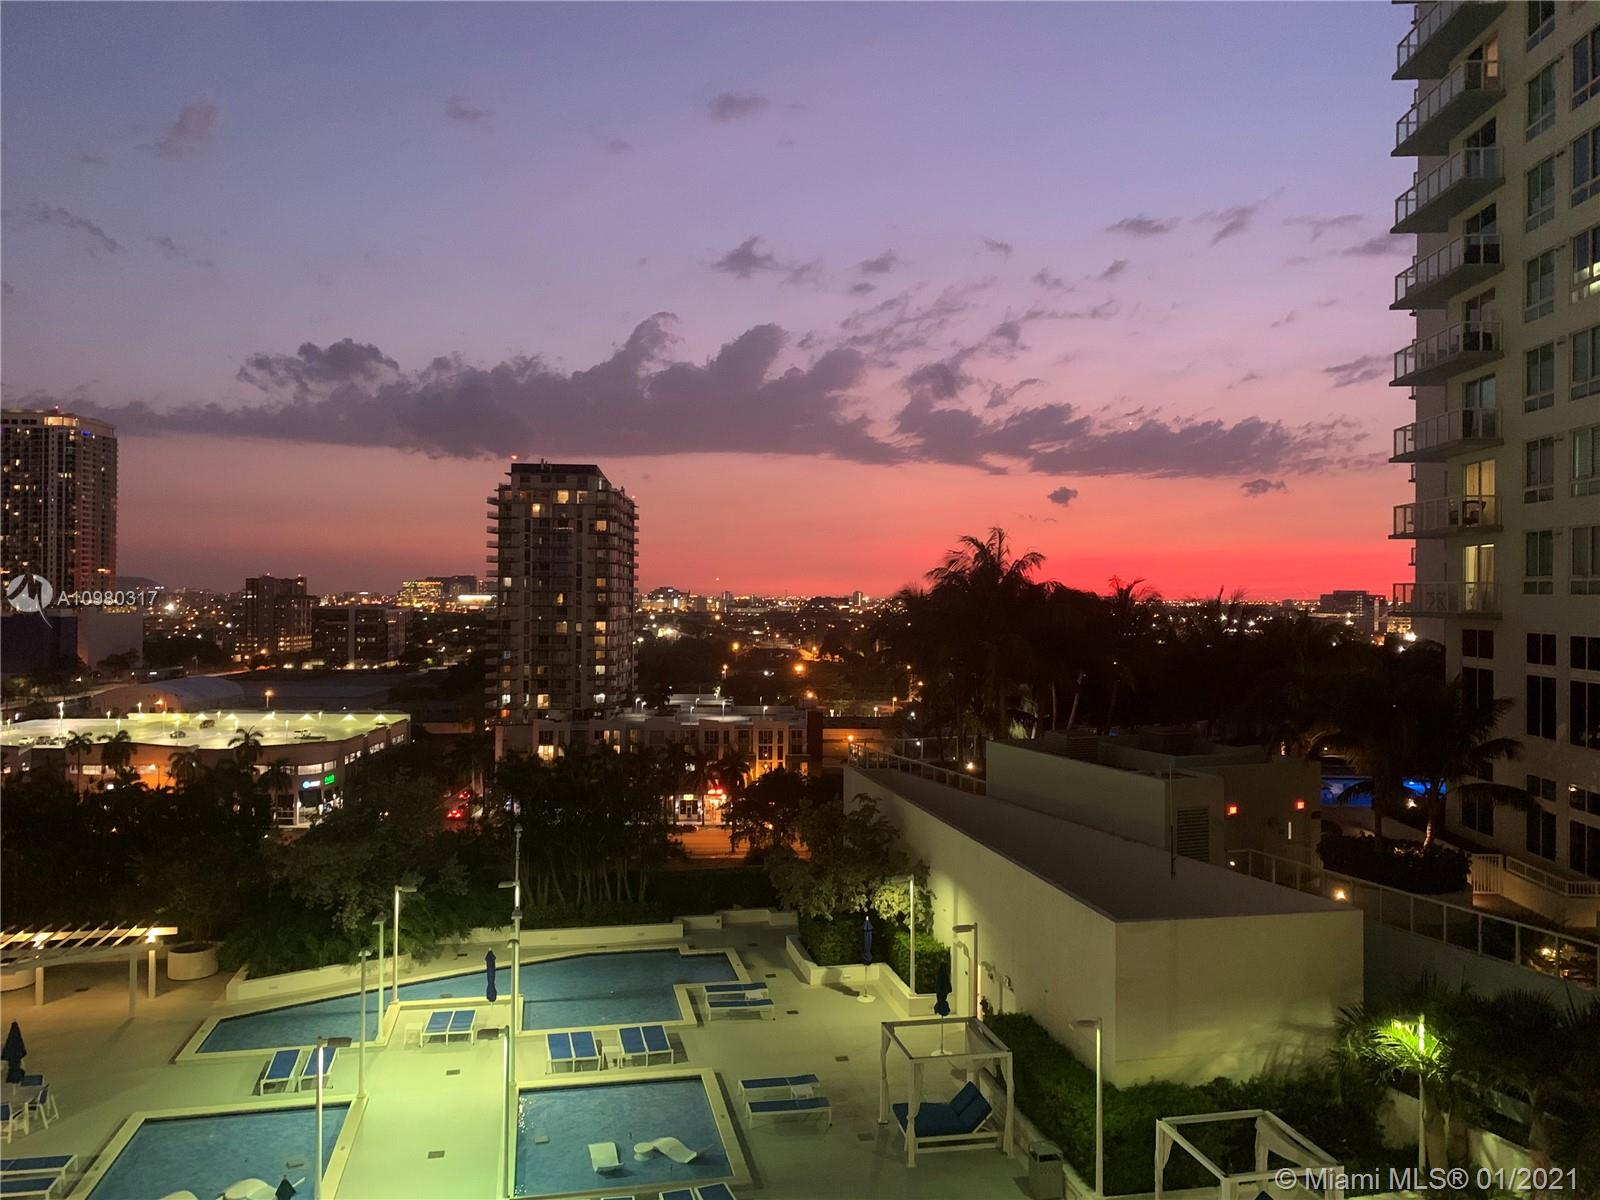 COME LIVE AT THE 1800 CLUB IN THIS BEAUTIFUL UNIT OVERLOOKING THE POOL AREA W/842 UNDER AC + 166 SQFT IN TERRACE.CABLE,HIGH SPEED INTERNET ACCESS,WATER & 1 PARKING SPACE INCLUDED IN LOW HOA OF ONLY $420 A MONTH.UNIT RENTED FOR $1800 A MONTH UNTIL 12/21/2021 BUT TENANT WILL CONSIDER MOVING.SPECTACULAR STATE-OF-THE-ART-GYM & POOL OVERLOOKING THE BAY/OCEAN/SEA. BUILDING IS FULL SERVICE W/VALET, DOORMAN, CONCIERGE, POOL & GYM ATTENDENT, IN HOUSE MANAGEMENT TEAM & SO ON. WALK TO PARK, RESTAURANTS, CAFES, NIGHTLIFE, BANKS, PUBLIX, PUBLIC TRANSPORTATION & SO MUCH MORE.5 MINUTES TO DOWNTOWN/BRICKELL, WYNWOOK, DESIGN DISTRICT, HEALTH DISTRICT & SOUTH BEACH. EASY ACCESS TO ALL MAJOR HIGHWAYS. VERY EASY TO SHOW CALL NOWWWWWWWW!!!!